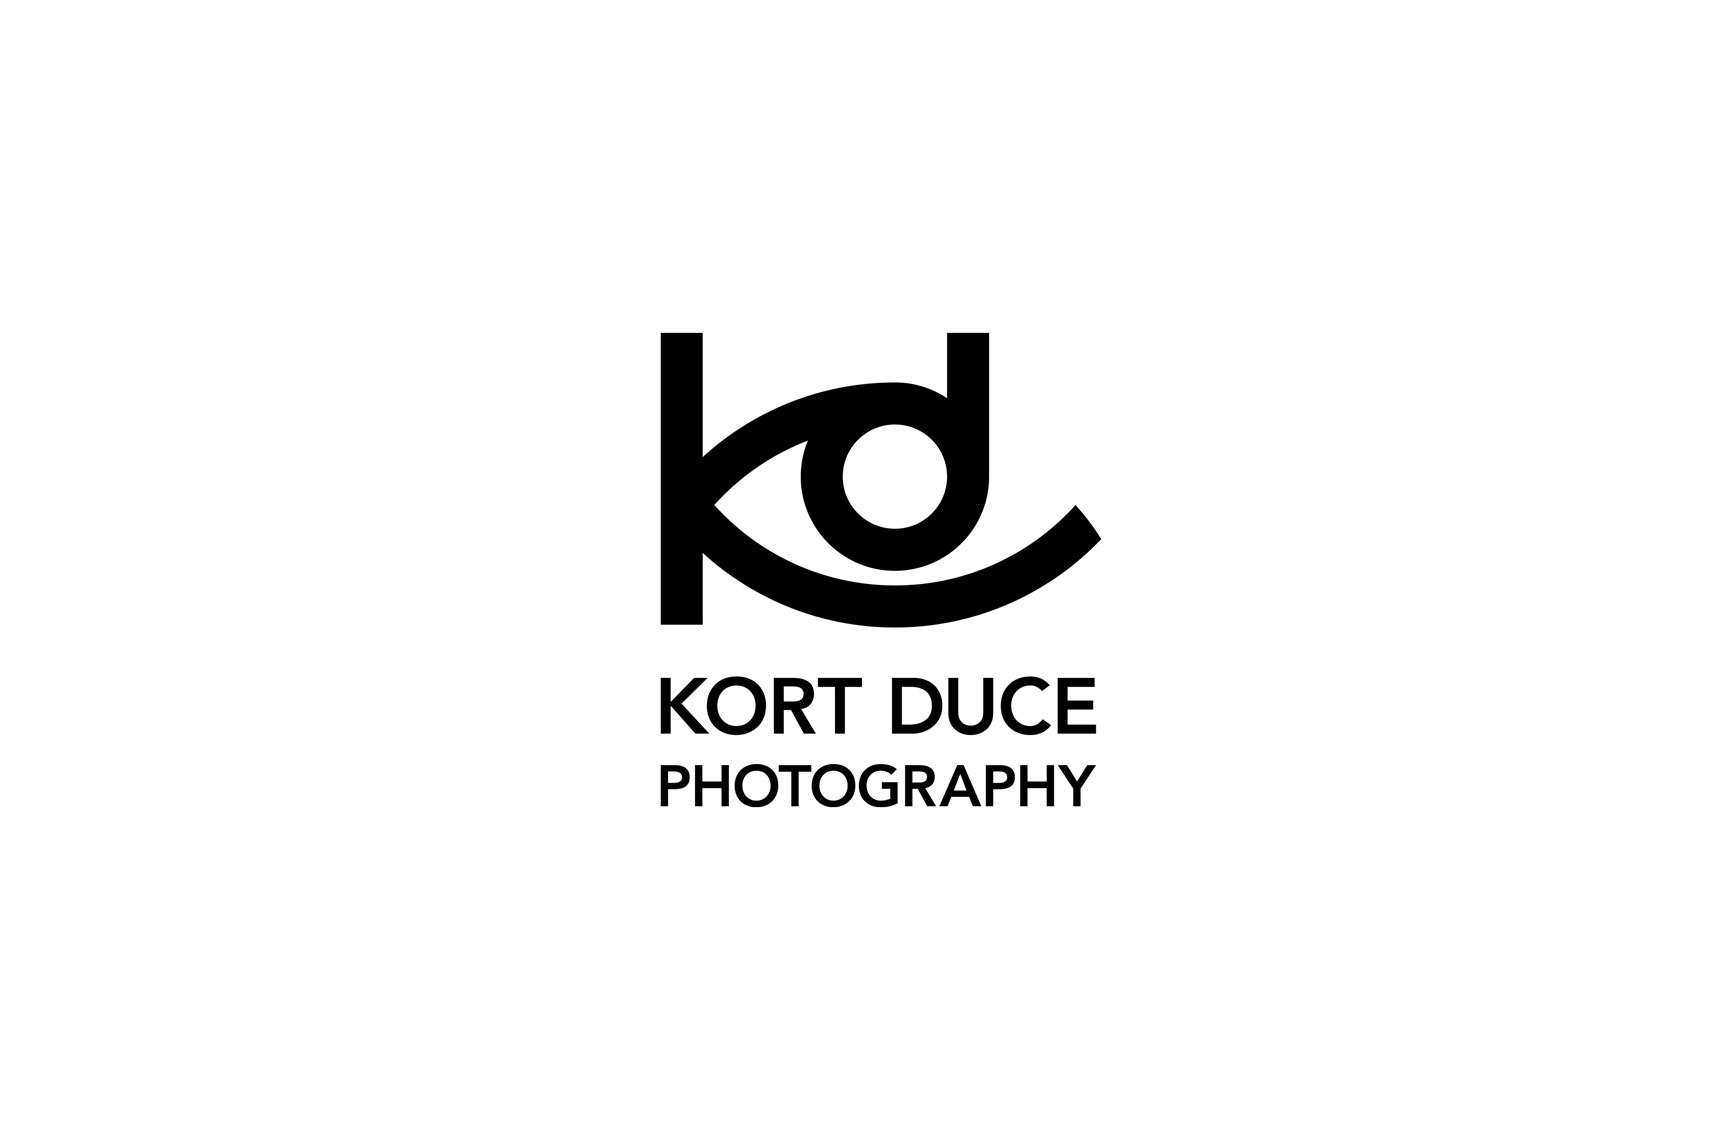 Kort-Duce-Industrial-Photography-114